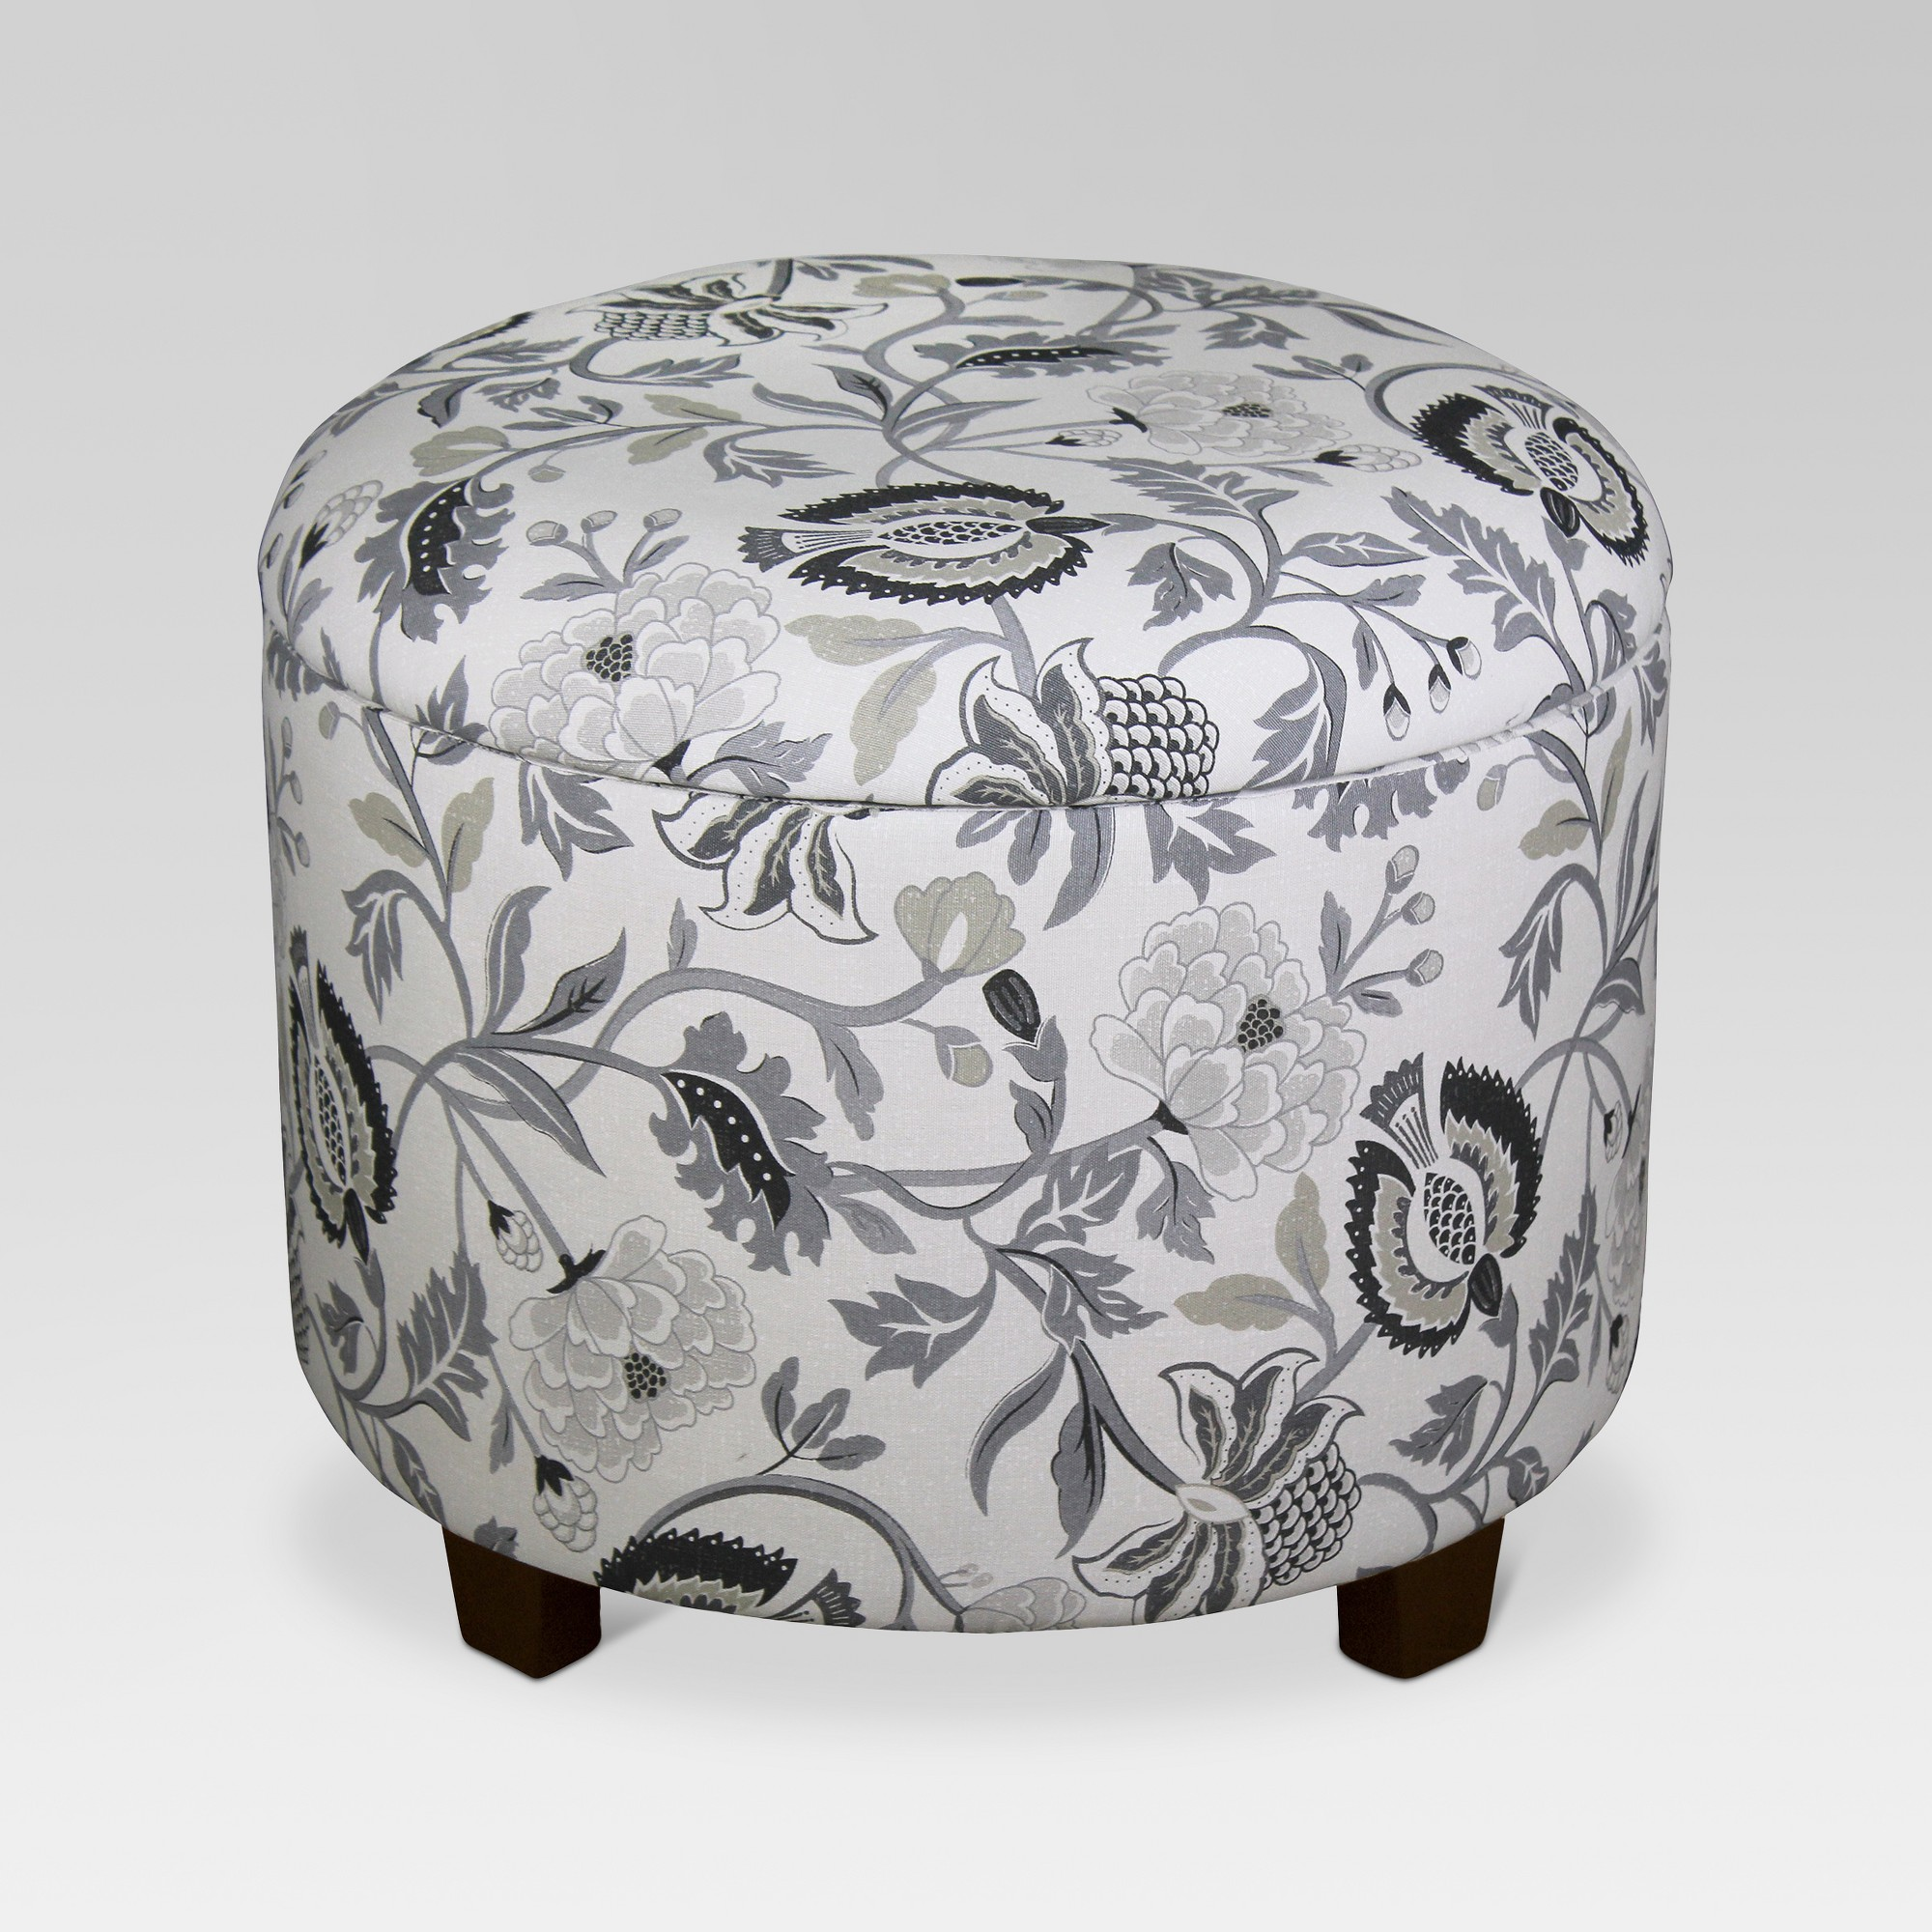 Awe Inspiring Trappe Medium Round Ottoman With Storage Gray Floral Gmtry Best Dining Table And Chair Ideas Images Gmtryco